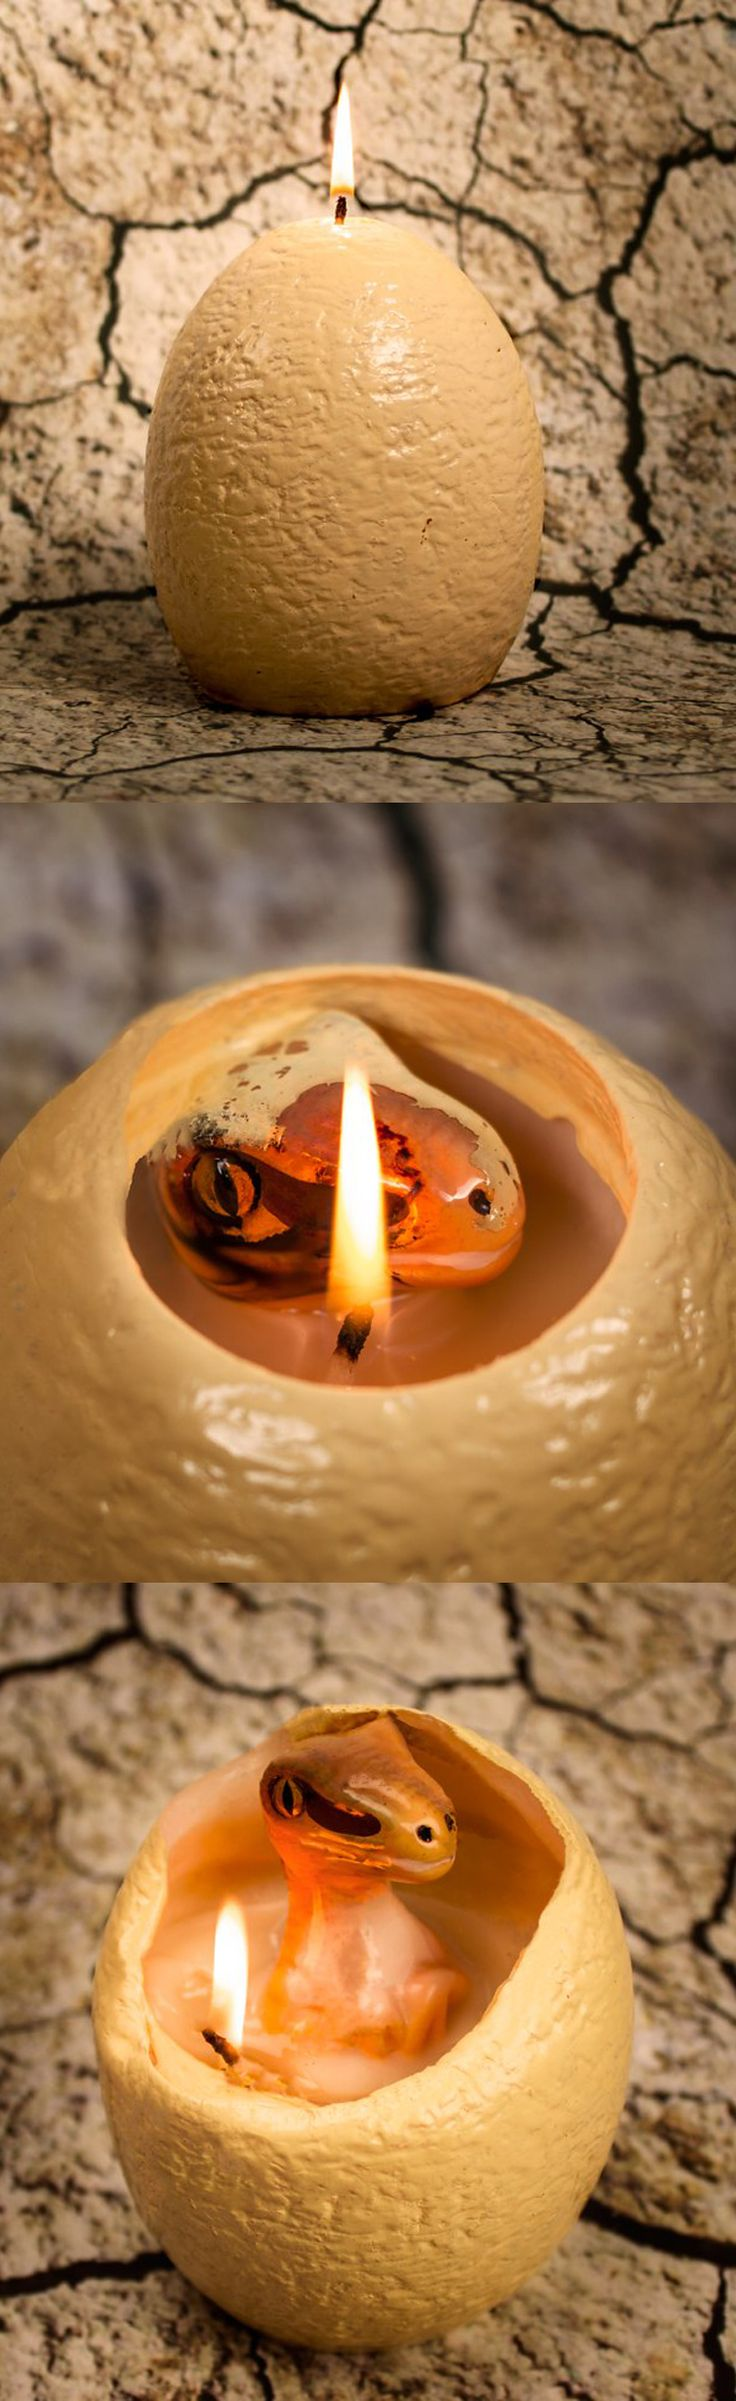 Who says you can't bring dinosaurs back to life? Now you can, all you need is this egg and flame. Check it out==> | Hatching Dinosaur Candle | http://gwyl.io/hatching-dinosaur-candle/